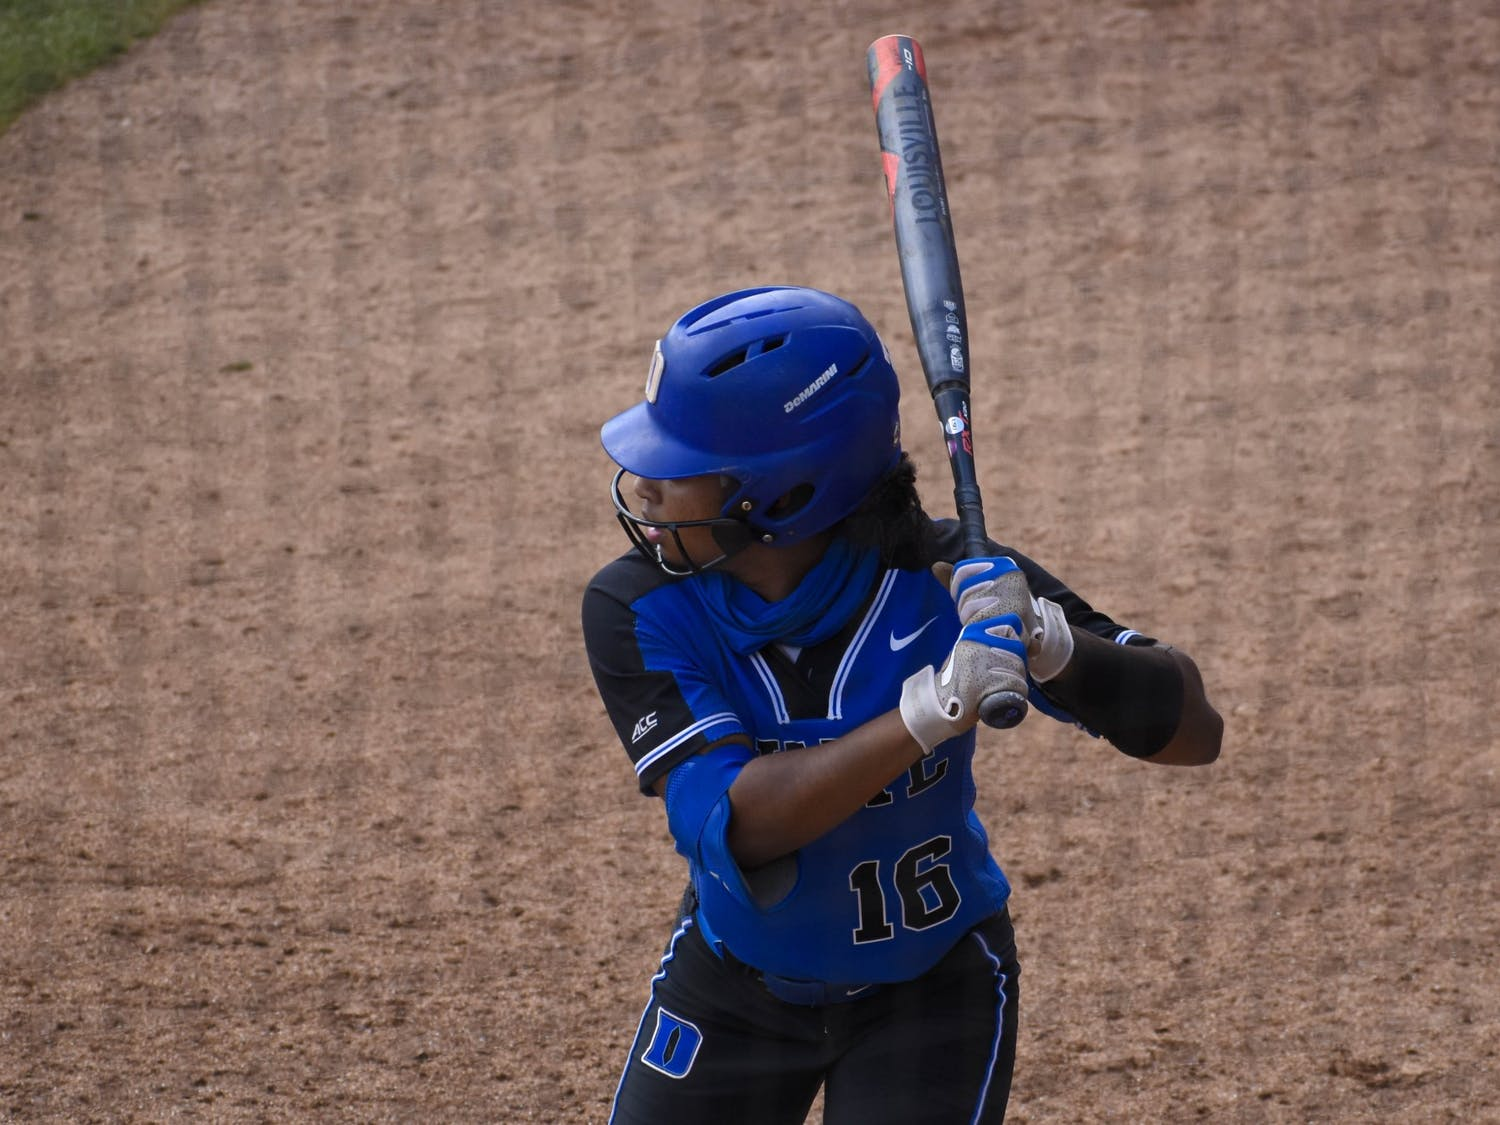 Deja Davis went 7-for-12 on the weekend, continuing what has been an impressive season so far for the junior infielder.